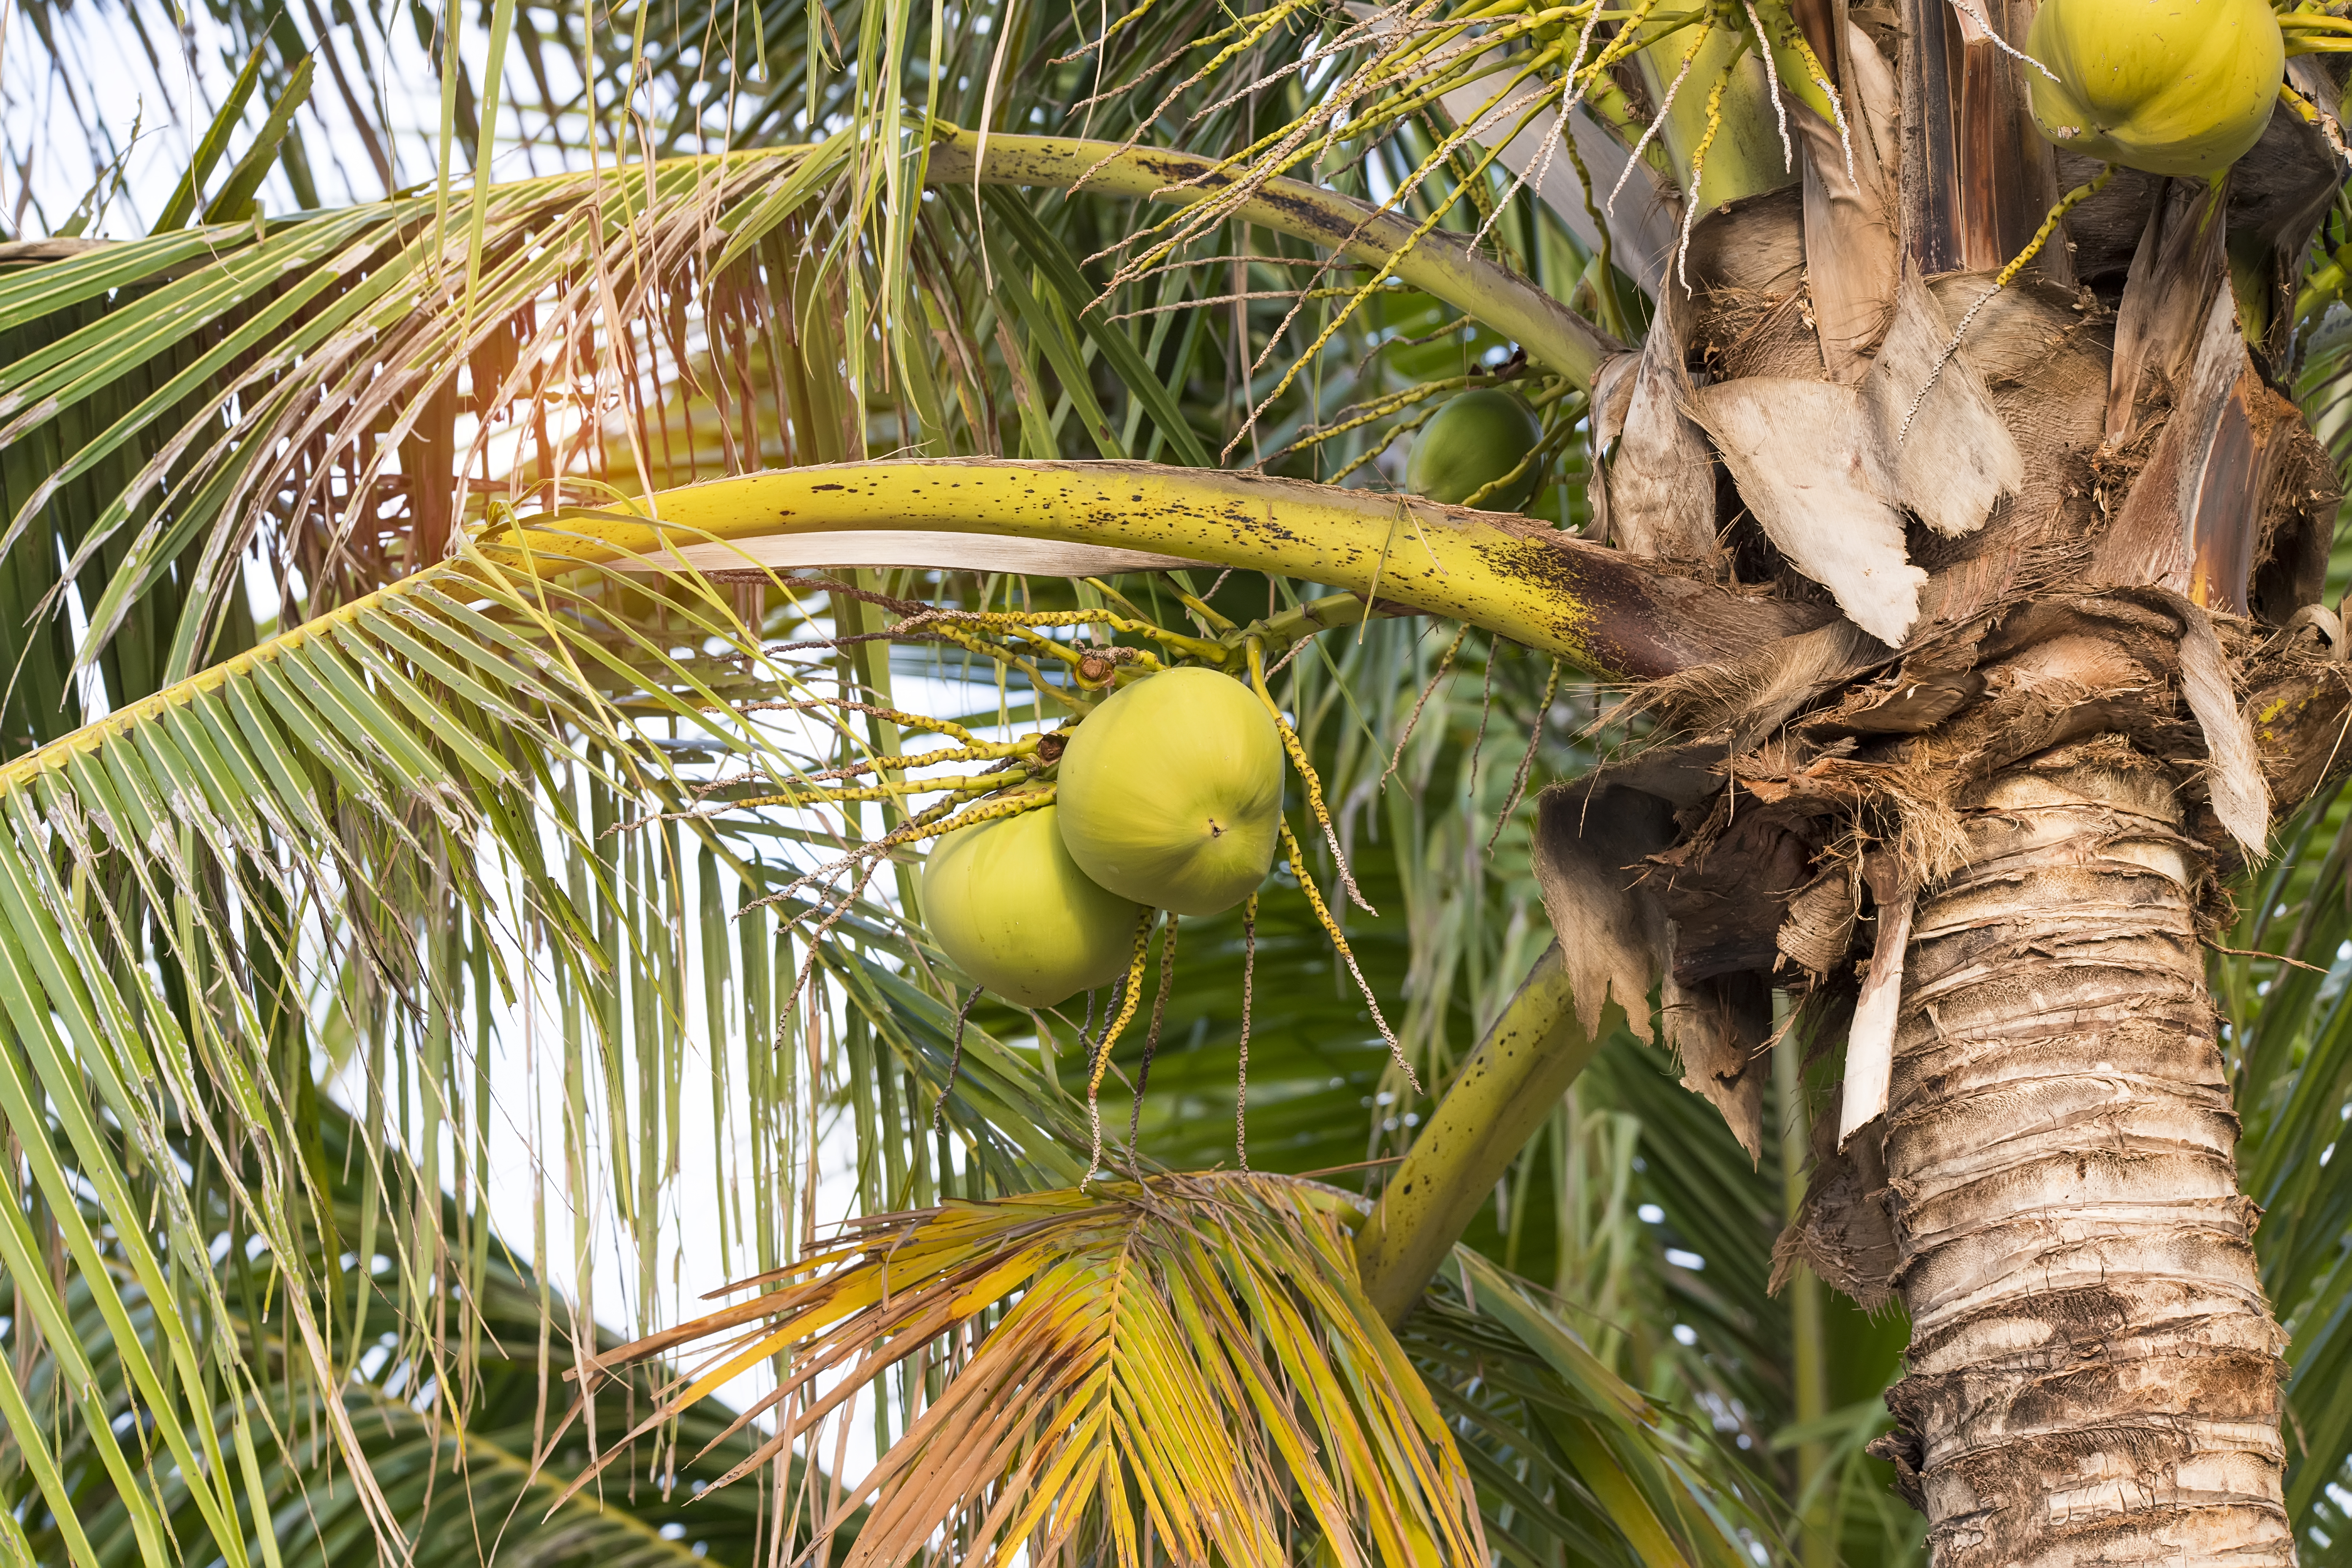 What Season Does the Coconut Tree Give Fruit? | Home Guides | SF Gate